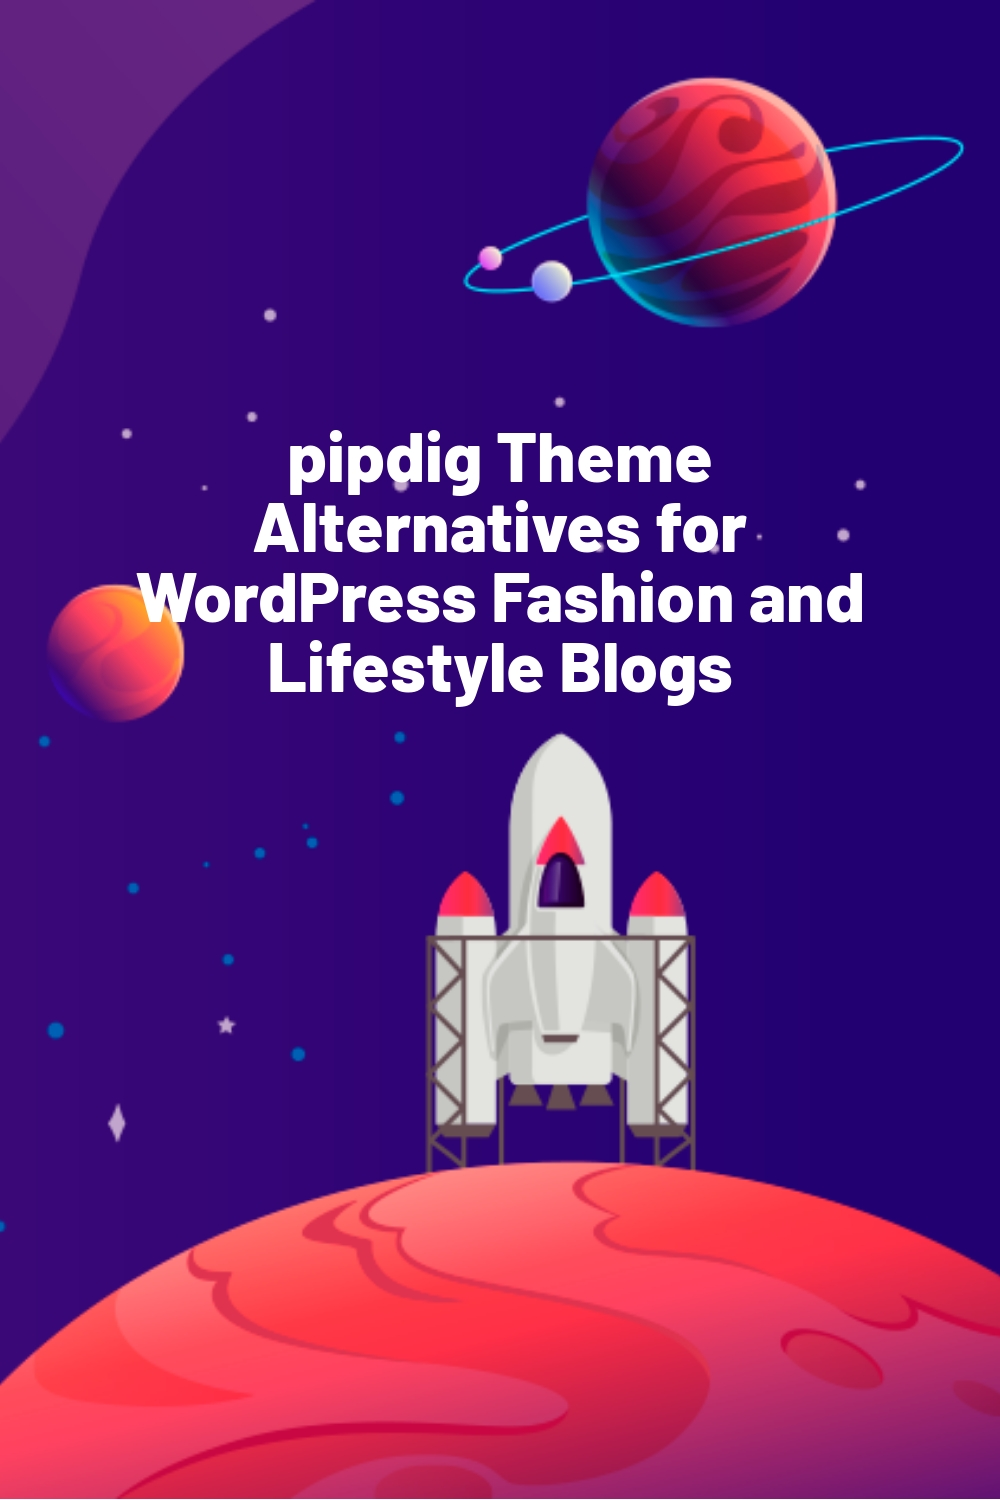 pipdig Theme Alternatives for WordPress Fashion and Lifestyle Blogs